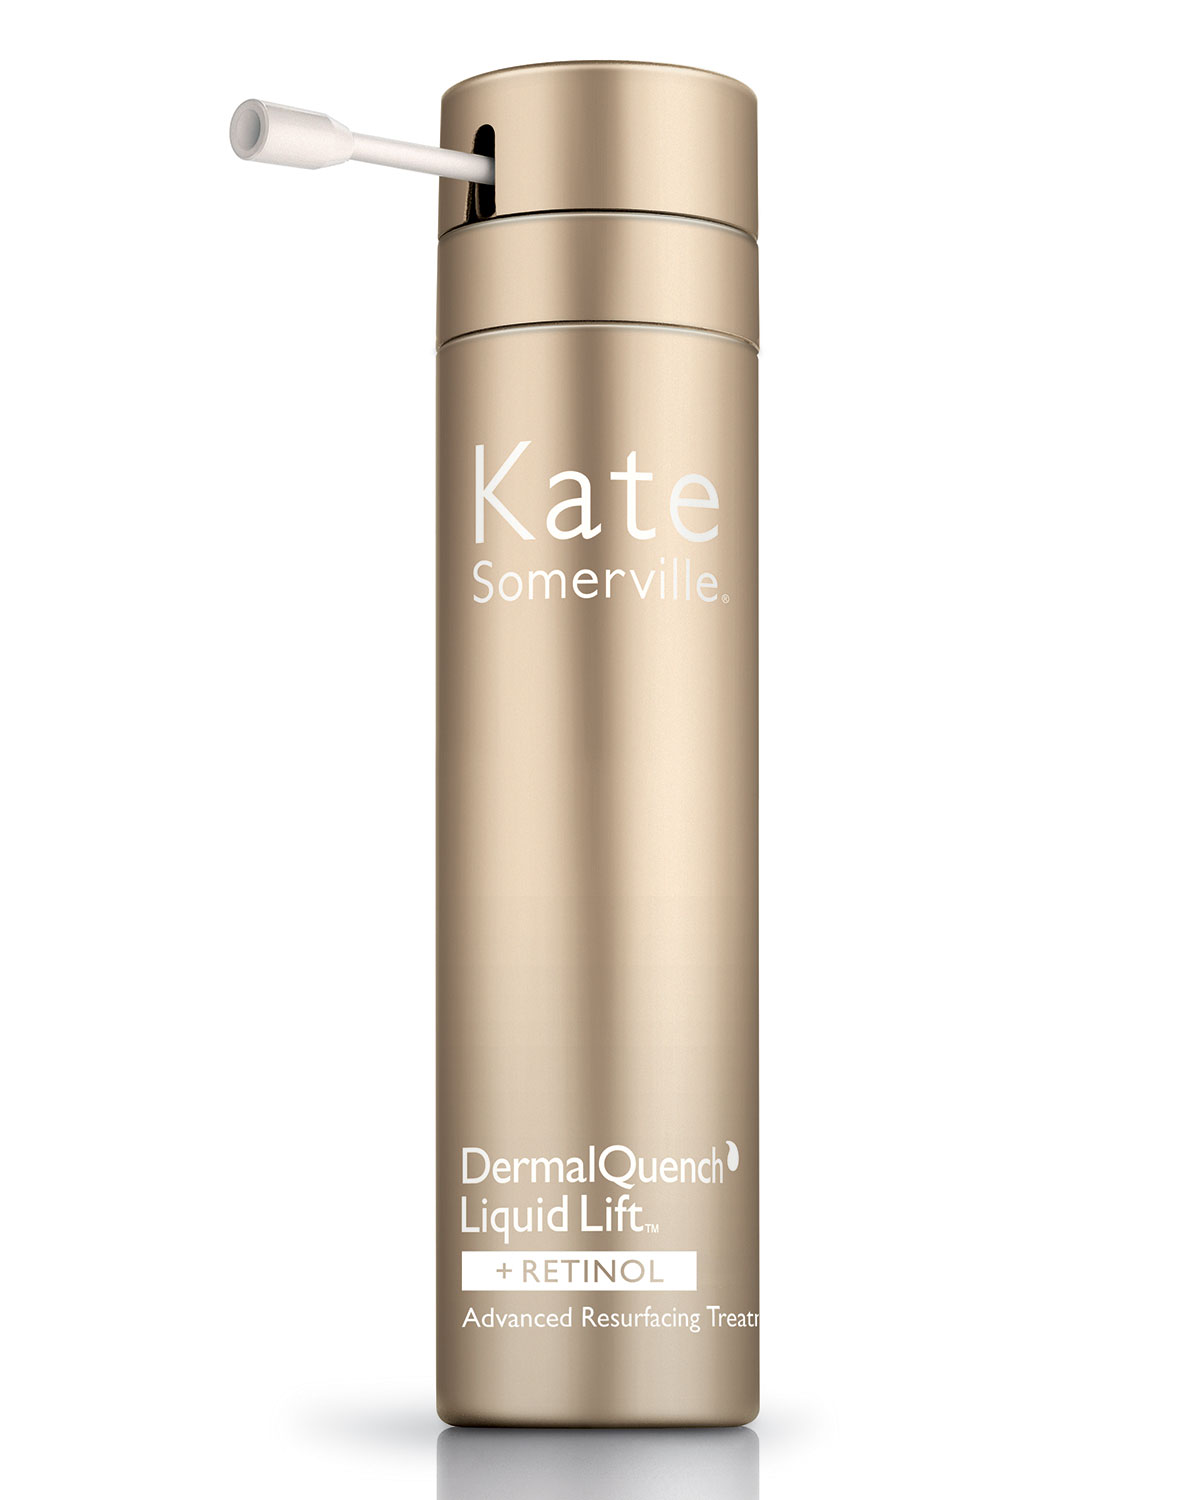 Kate Somerville 2.5 oz. Dermal Quench Liquid Lift + Retinol